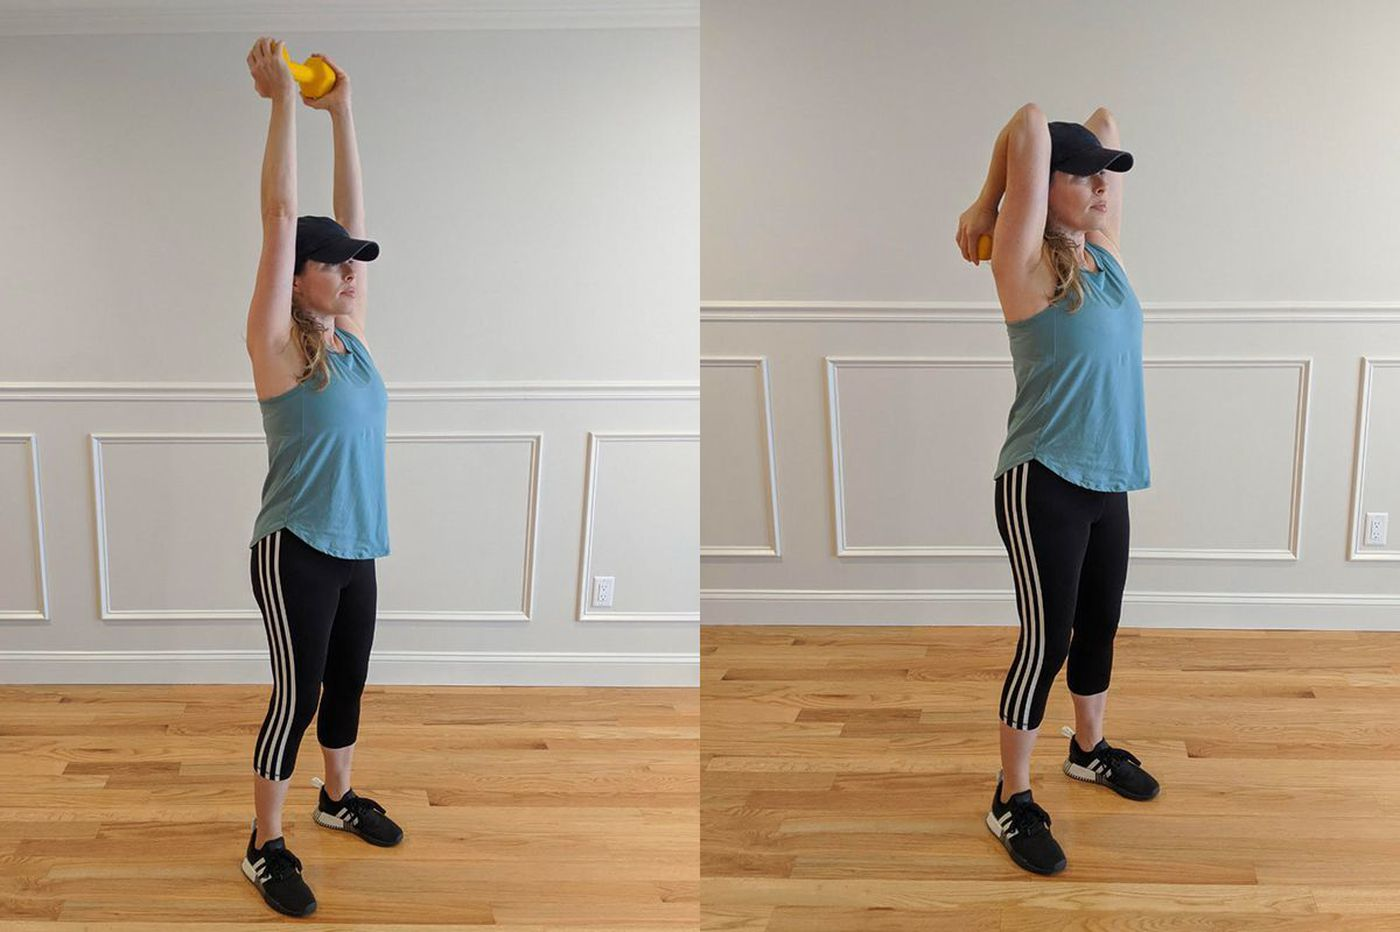 3 exercises for correcting painful muscle imbalances